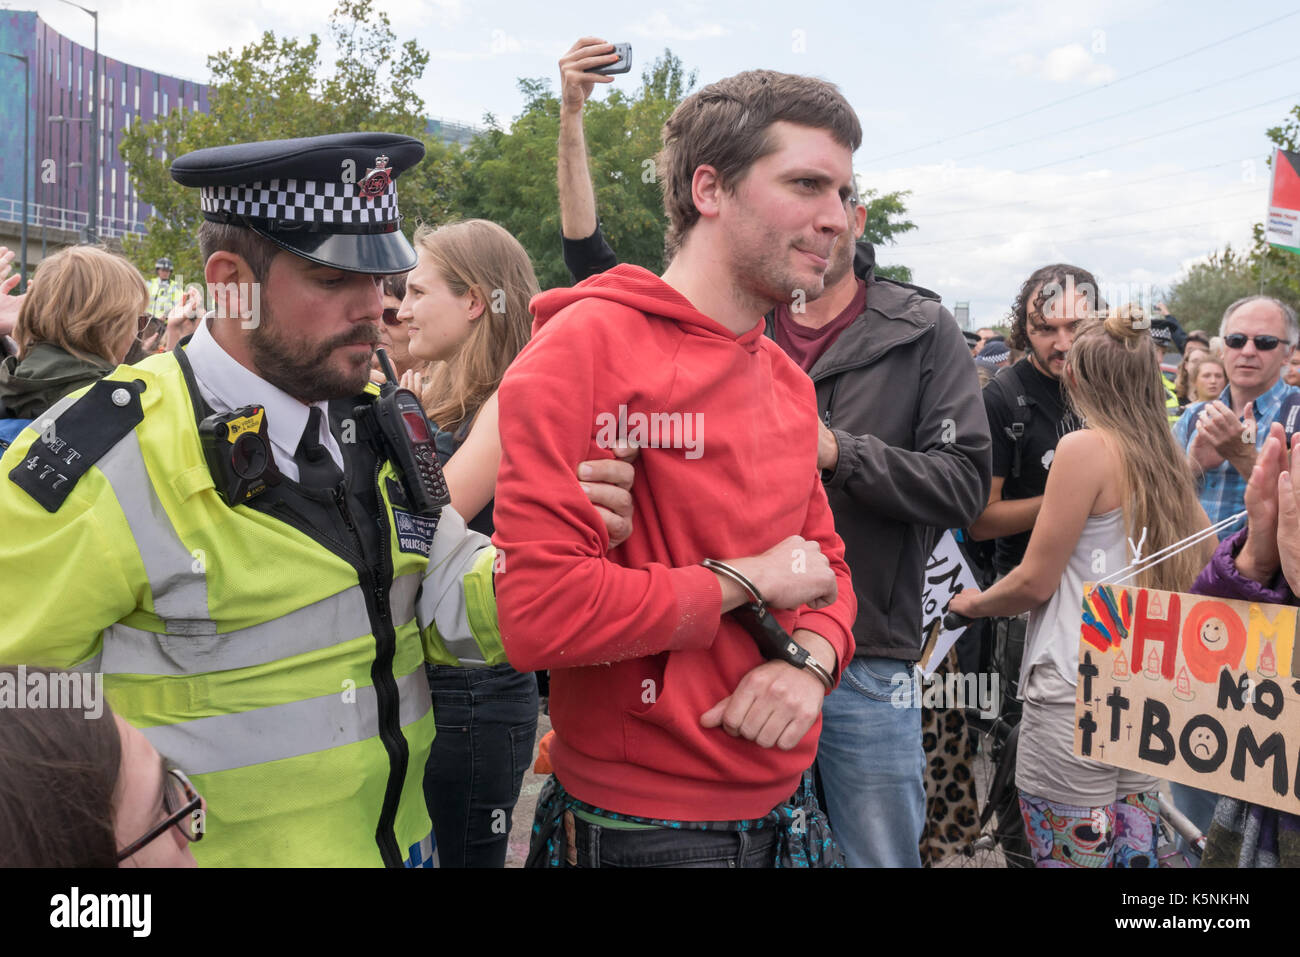 London, UK. 9th Sep, 2017. London, UK. 9th September 2017. Police lead away one of the protesters who had blocked Stock Photo